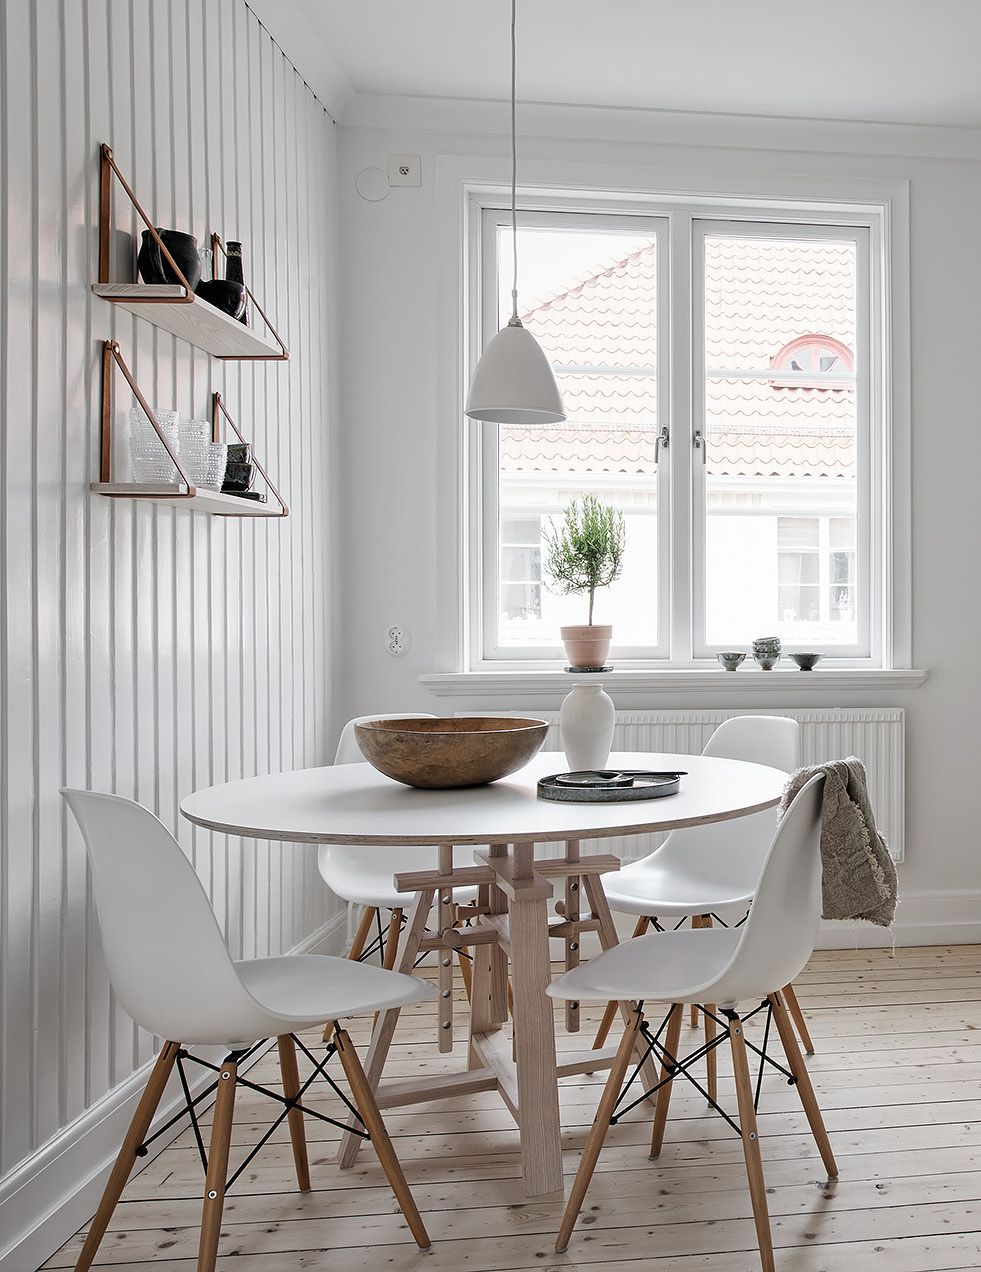 Scandinavian dining room take a look at this amazing dining room